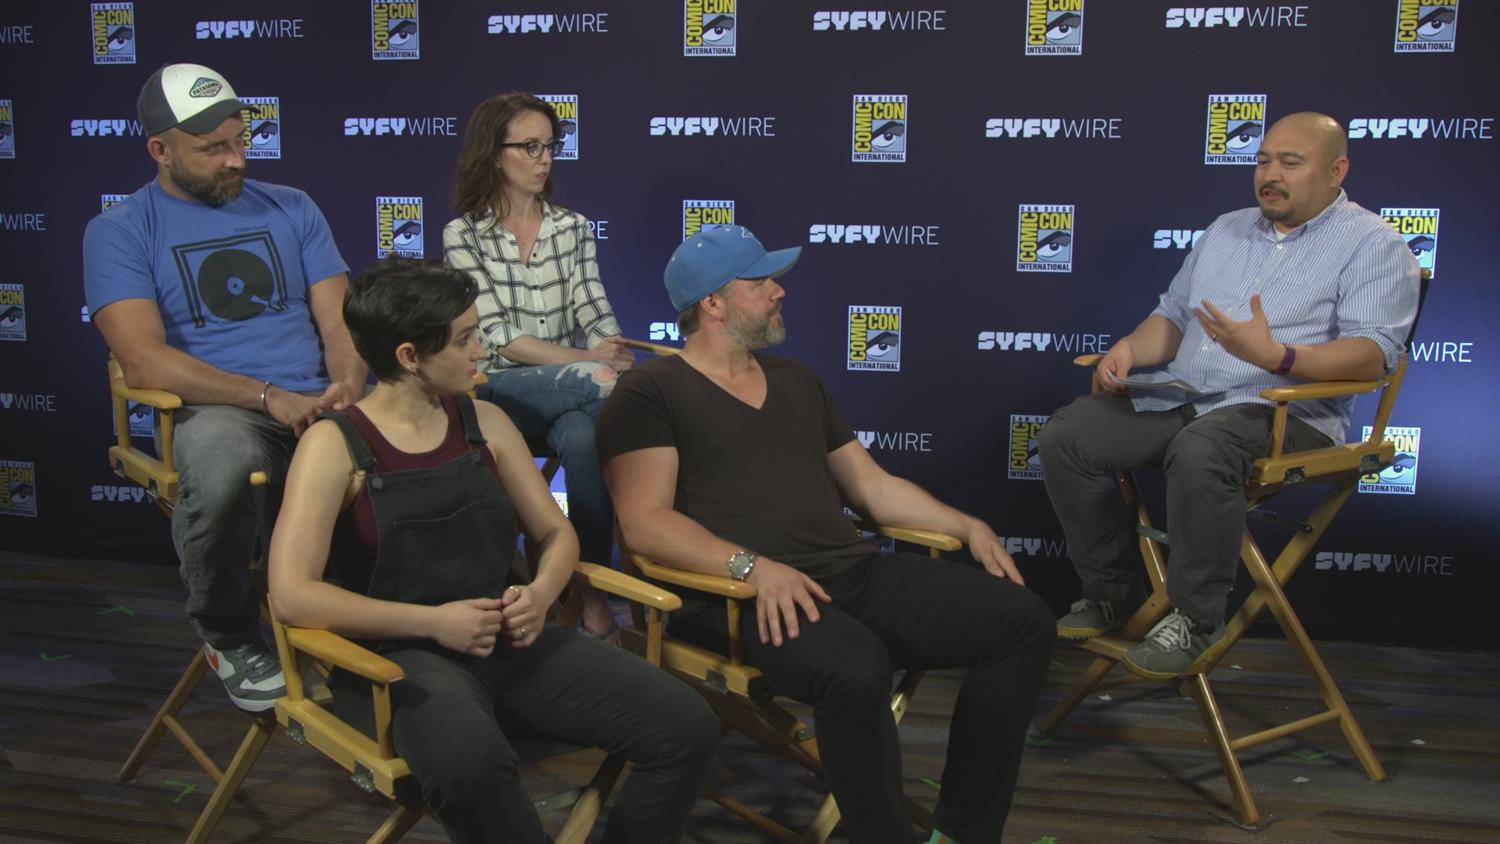 Voltron: Legendary Defender Cast and Producers On Seasons 3, 4 and Fans